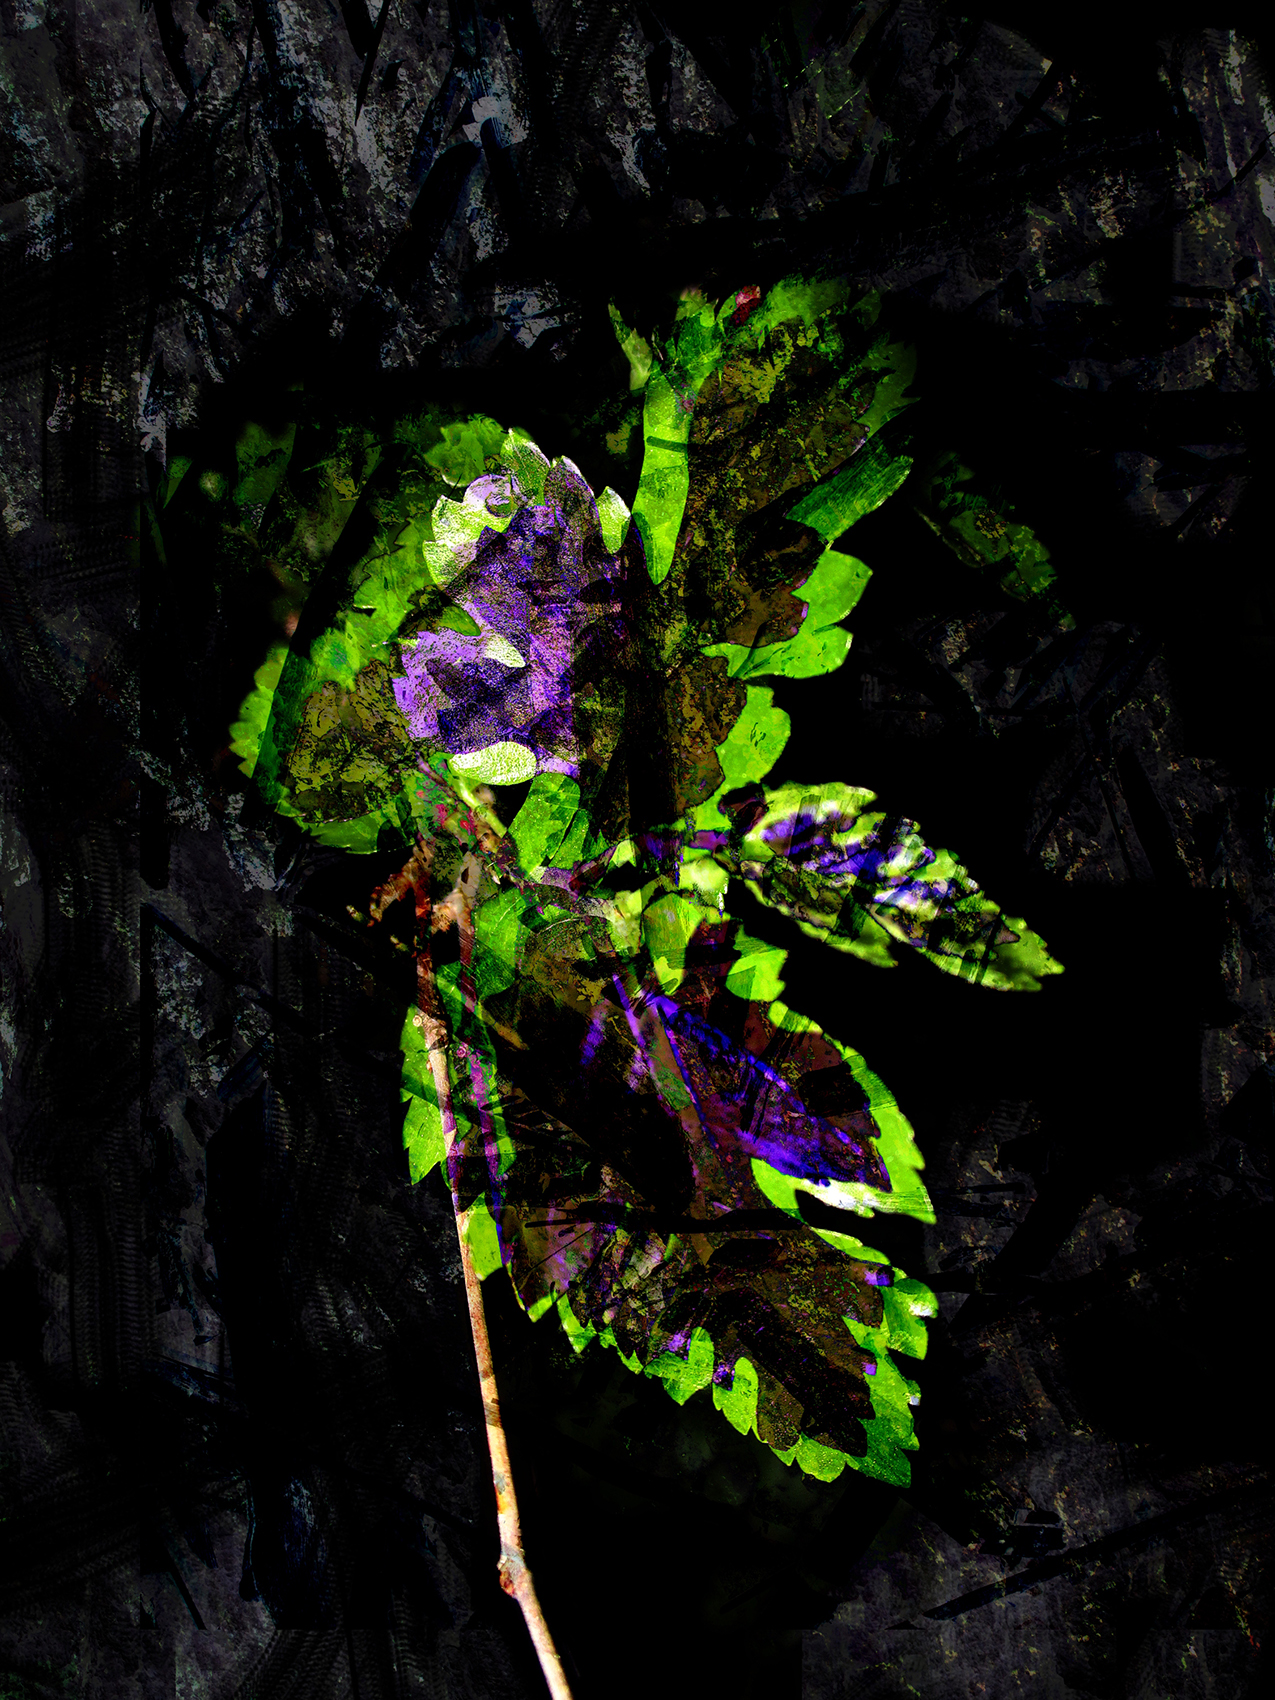 After the Echo by Aaron Lelito: abstract leaf shapes in bright purple and green on a black background